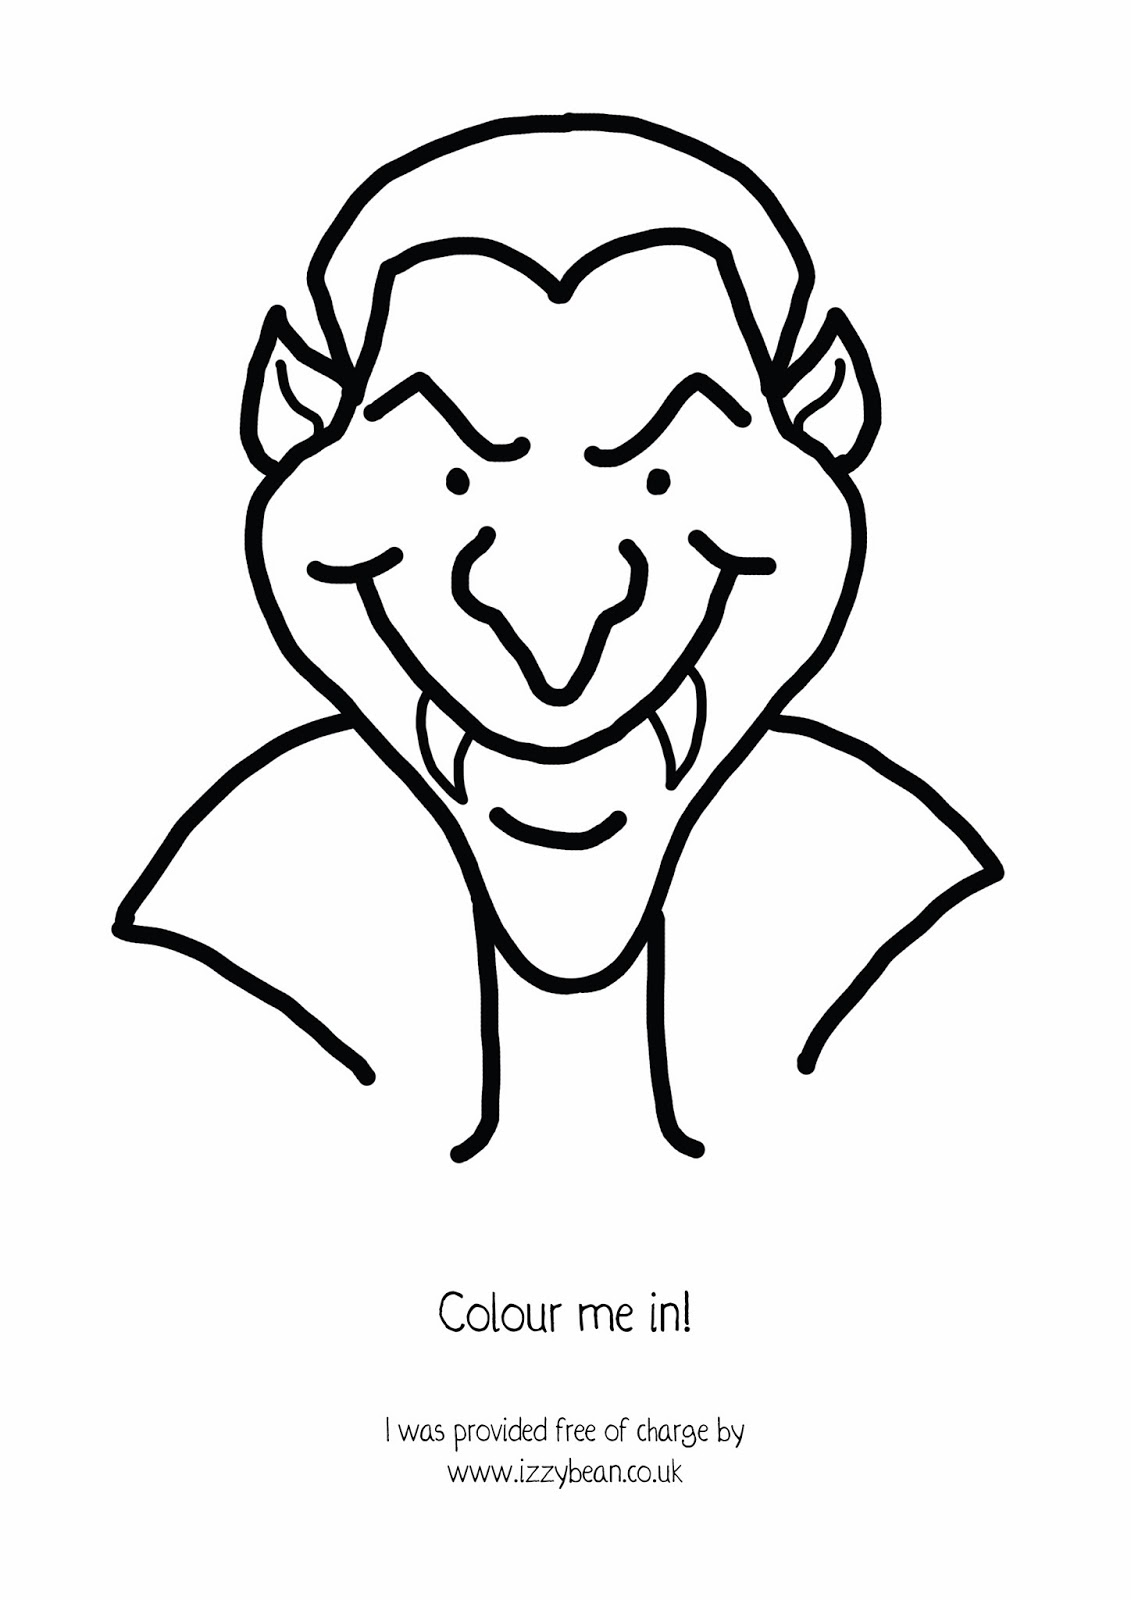 izzy bean illustrations step by step halloween dracula vampire monster with free colouring sheet for kids - Drawing Sheet For Kids